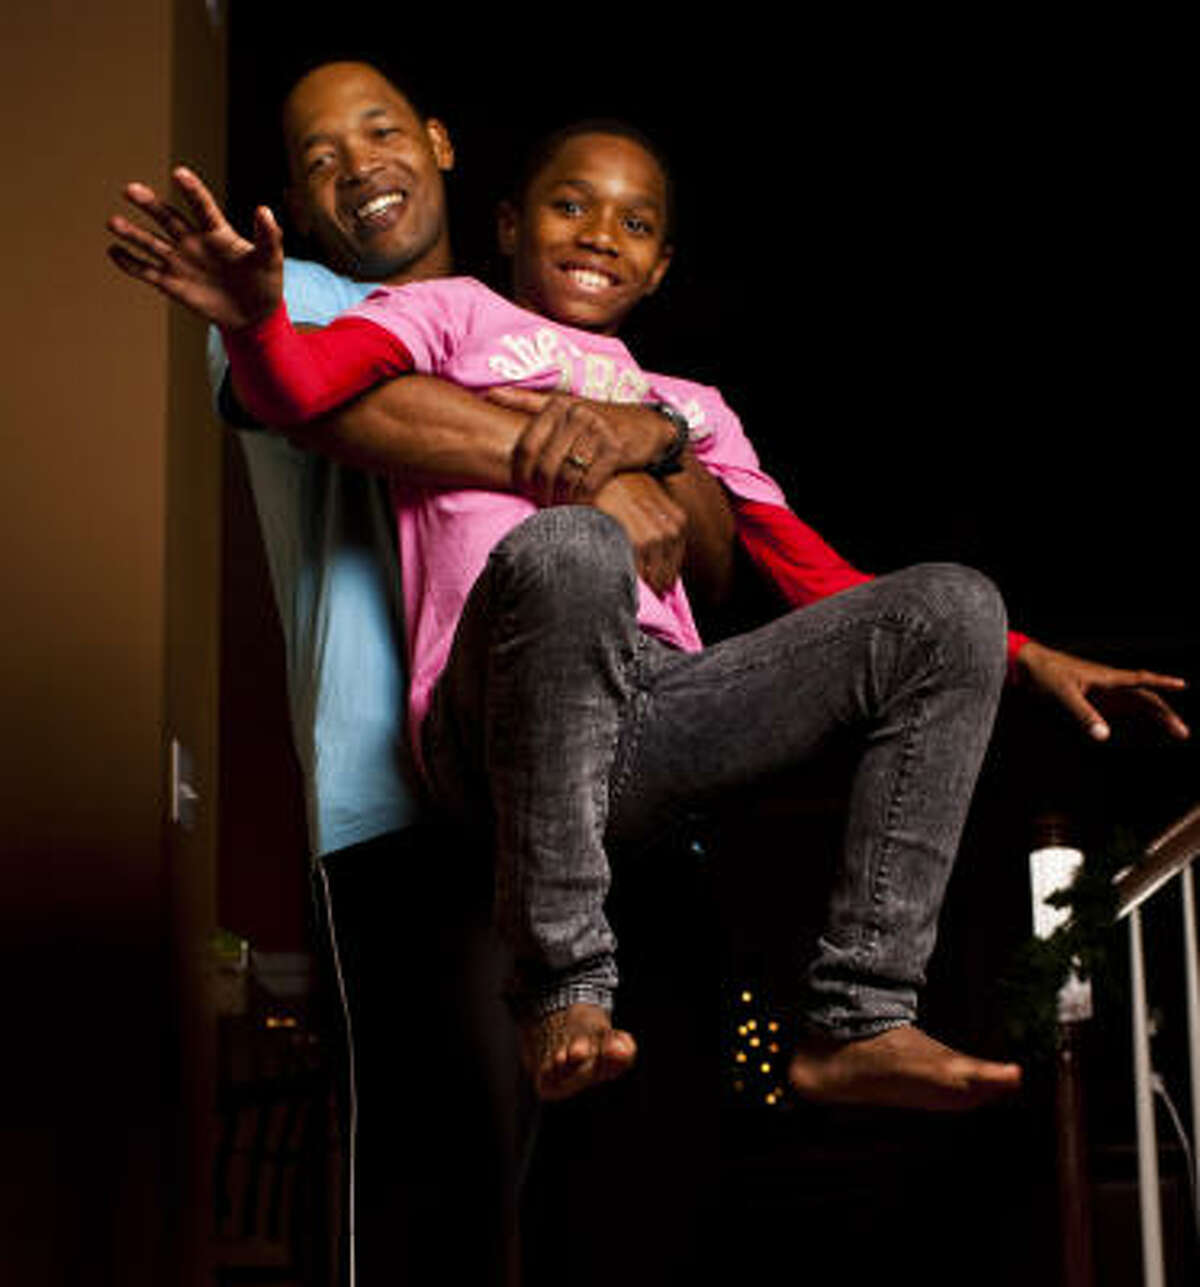 Ten-year-old Tyler and his firefighter father, Rodney Hudson, demonstrate a playful maneuver Tyler credited with helping him save a choking classmate.